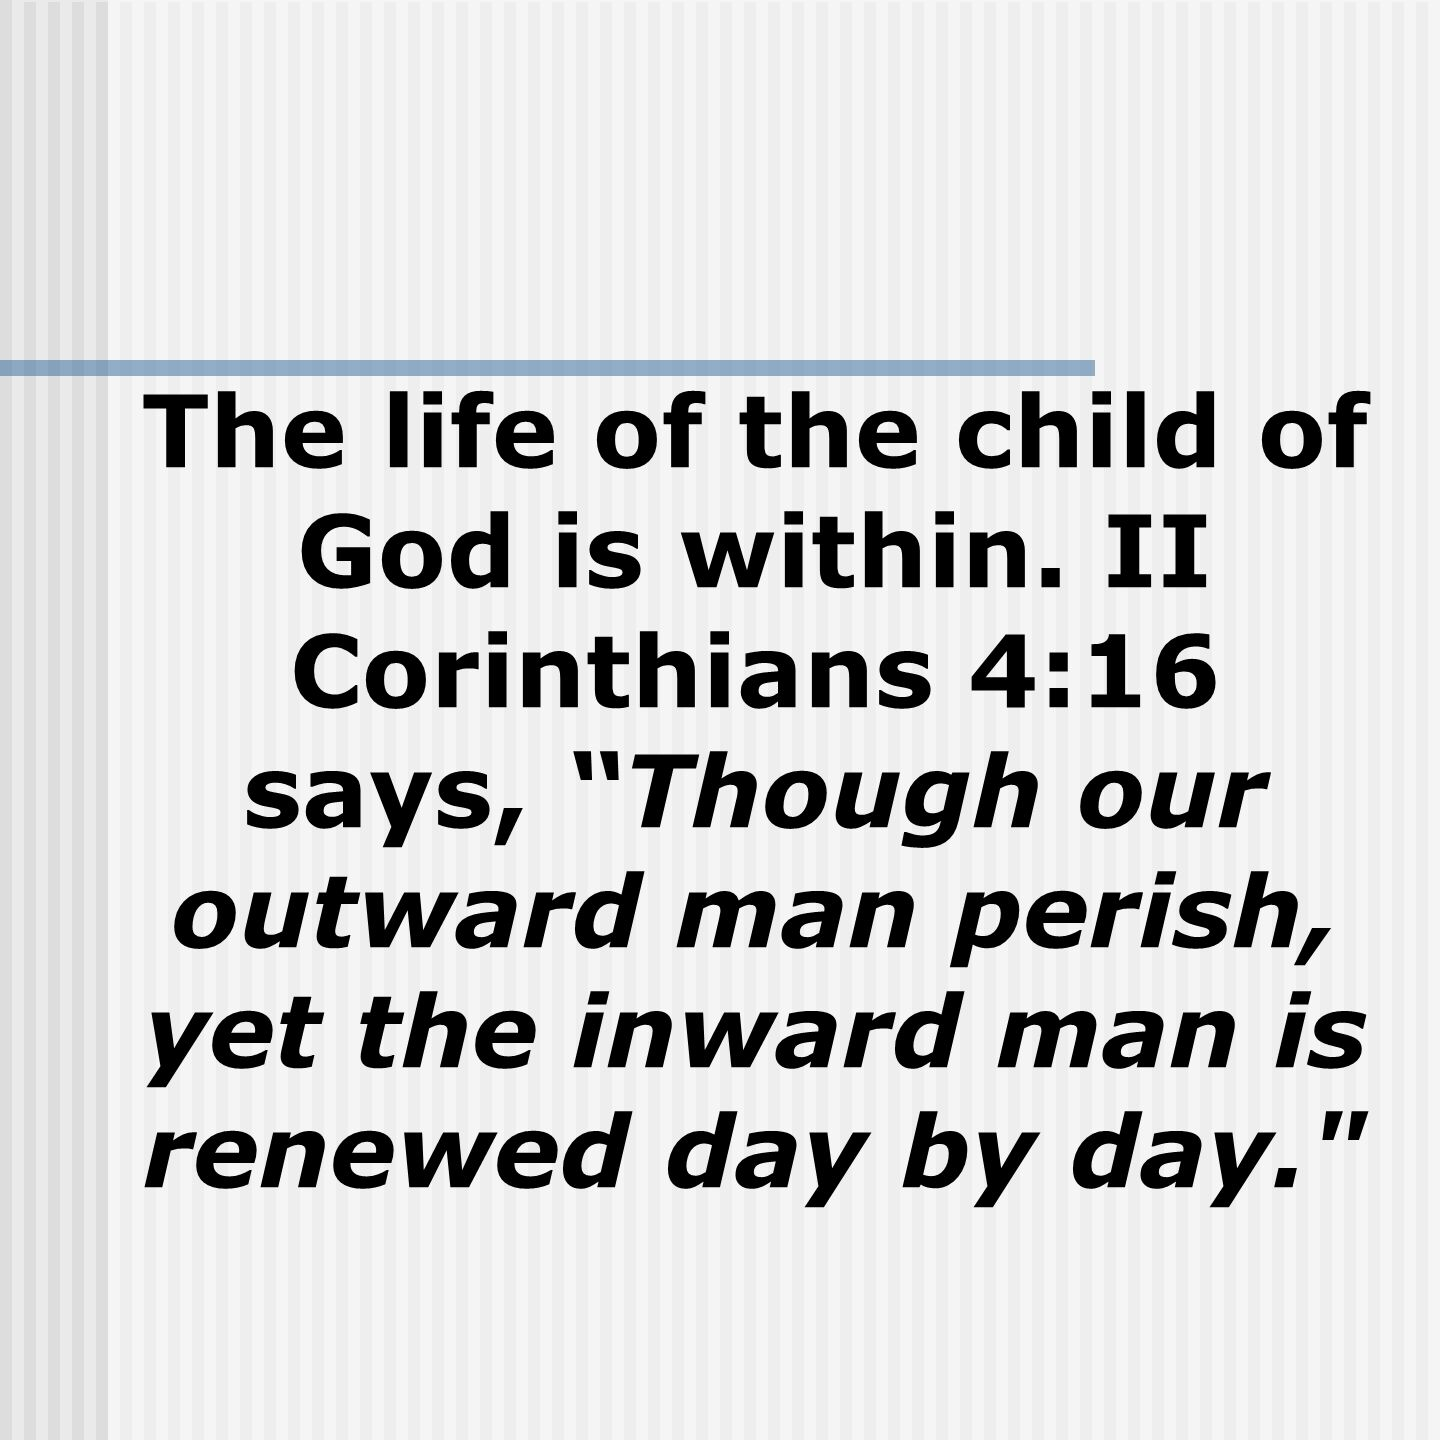 The life of the child of God is within.